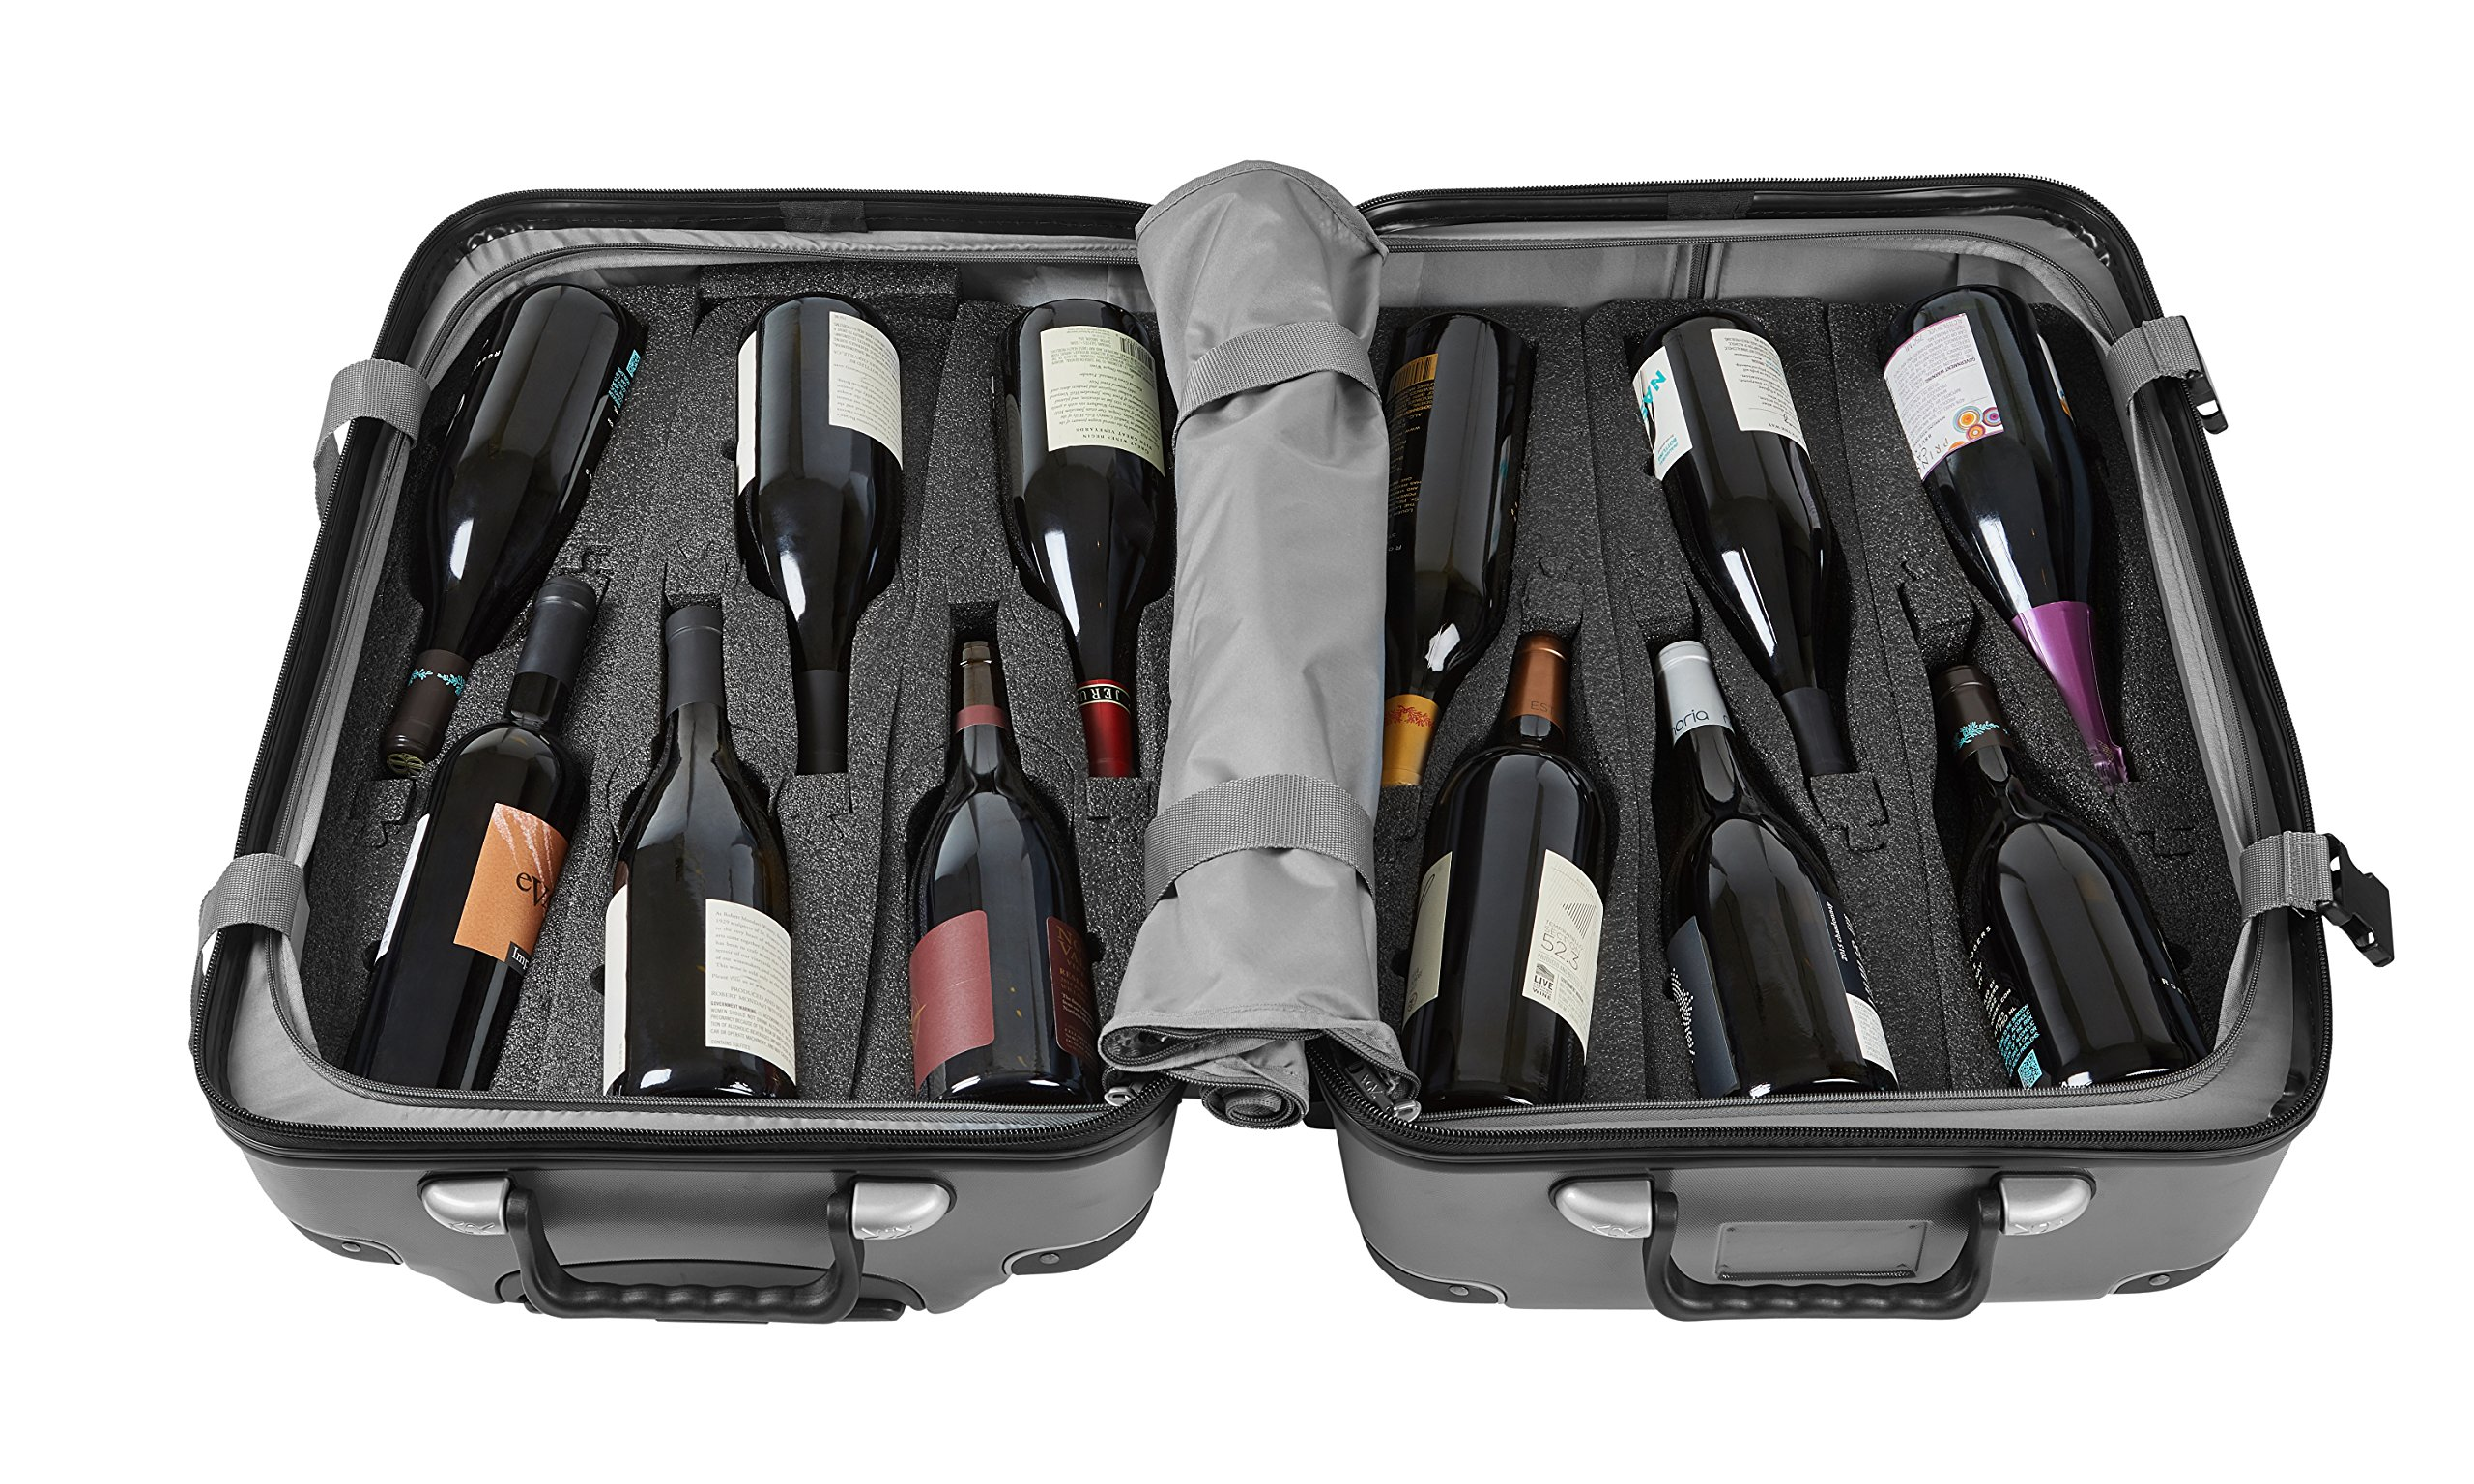 Vin Garde Valise Grande (Standard Size) | Wine Travel Suitcase | All-purpose Luggage | Up to 12 Bottles (Grey, One Size) by Vin Garde Valise